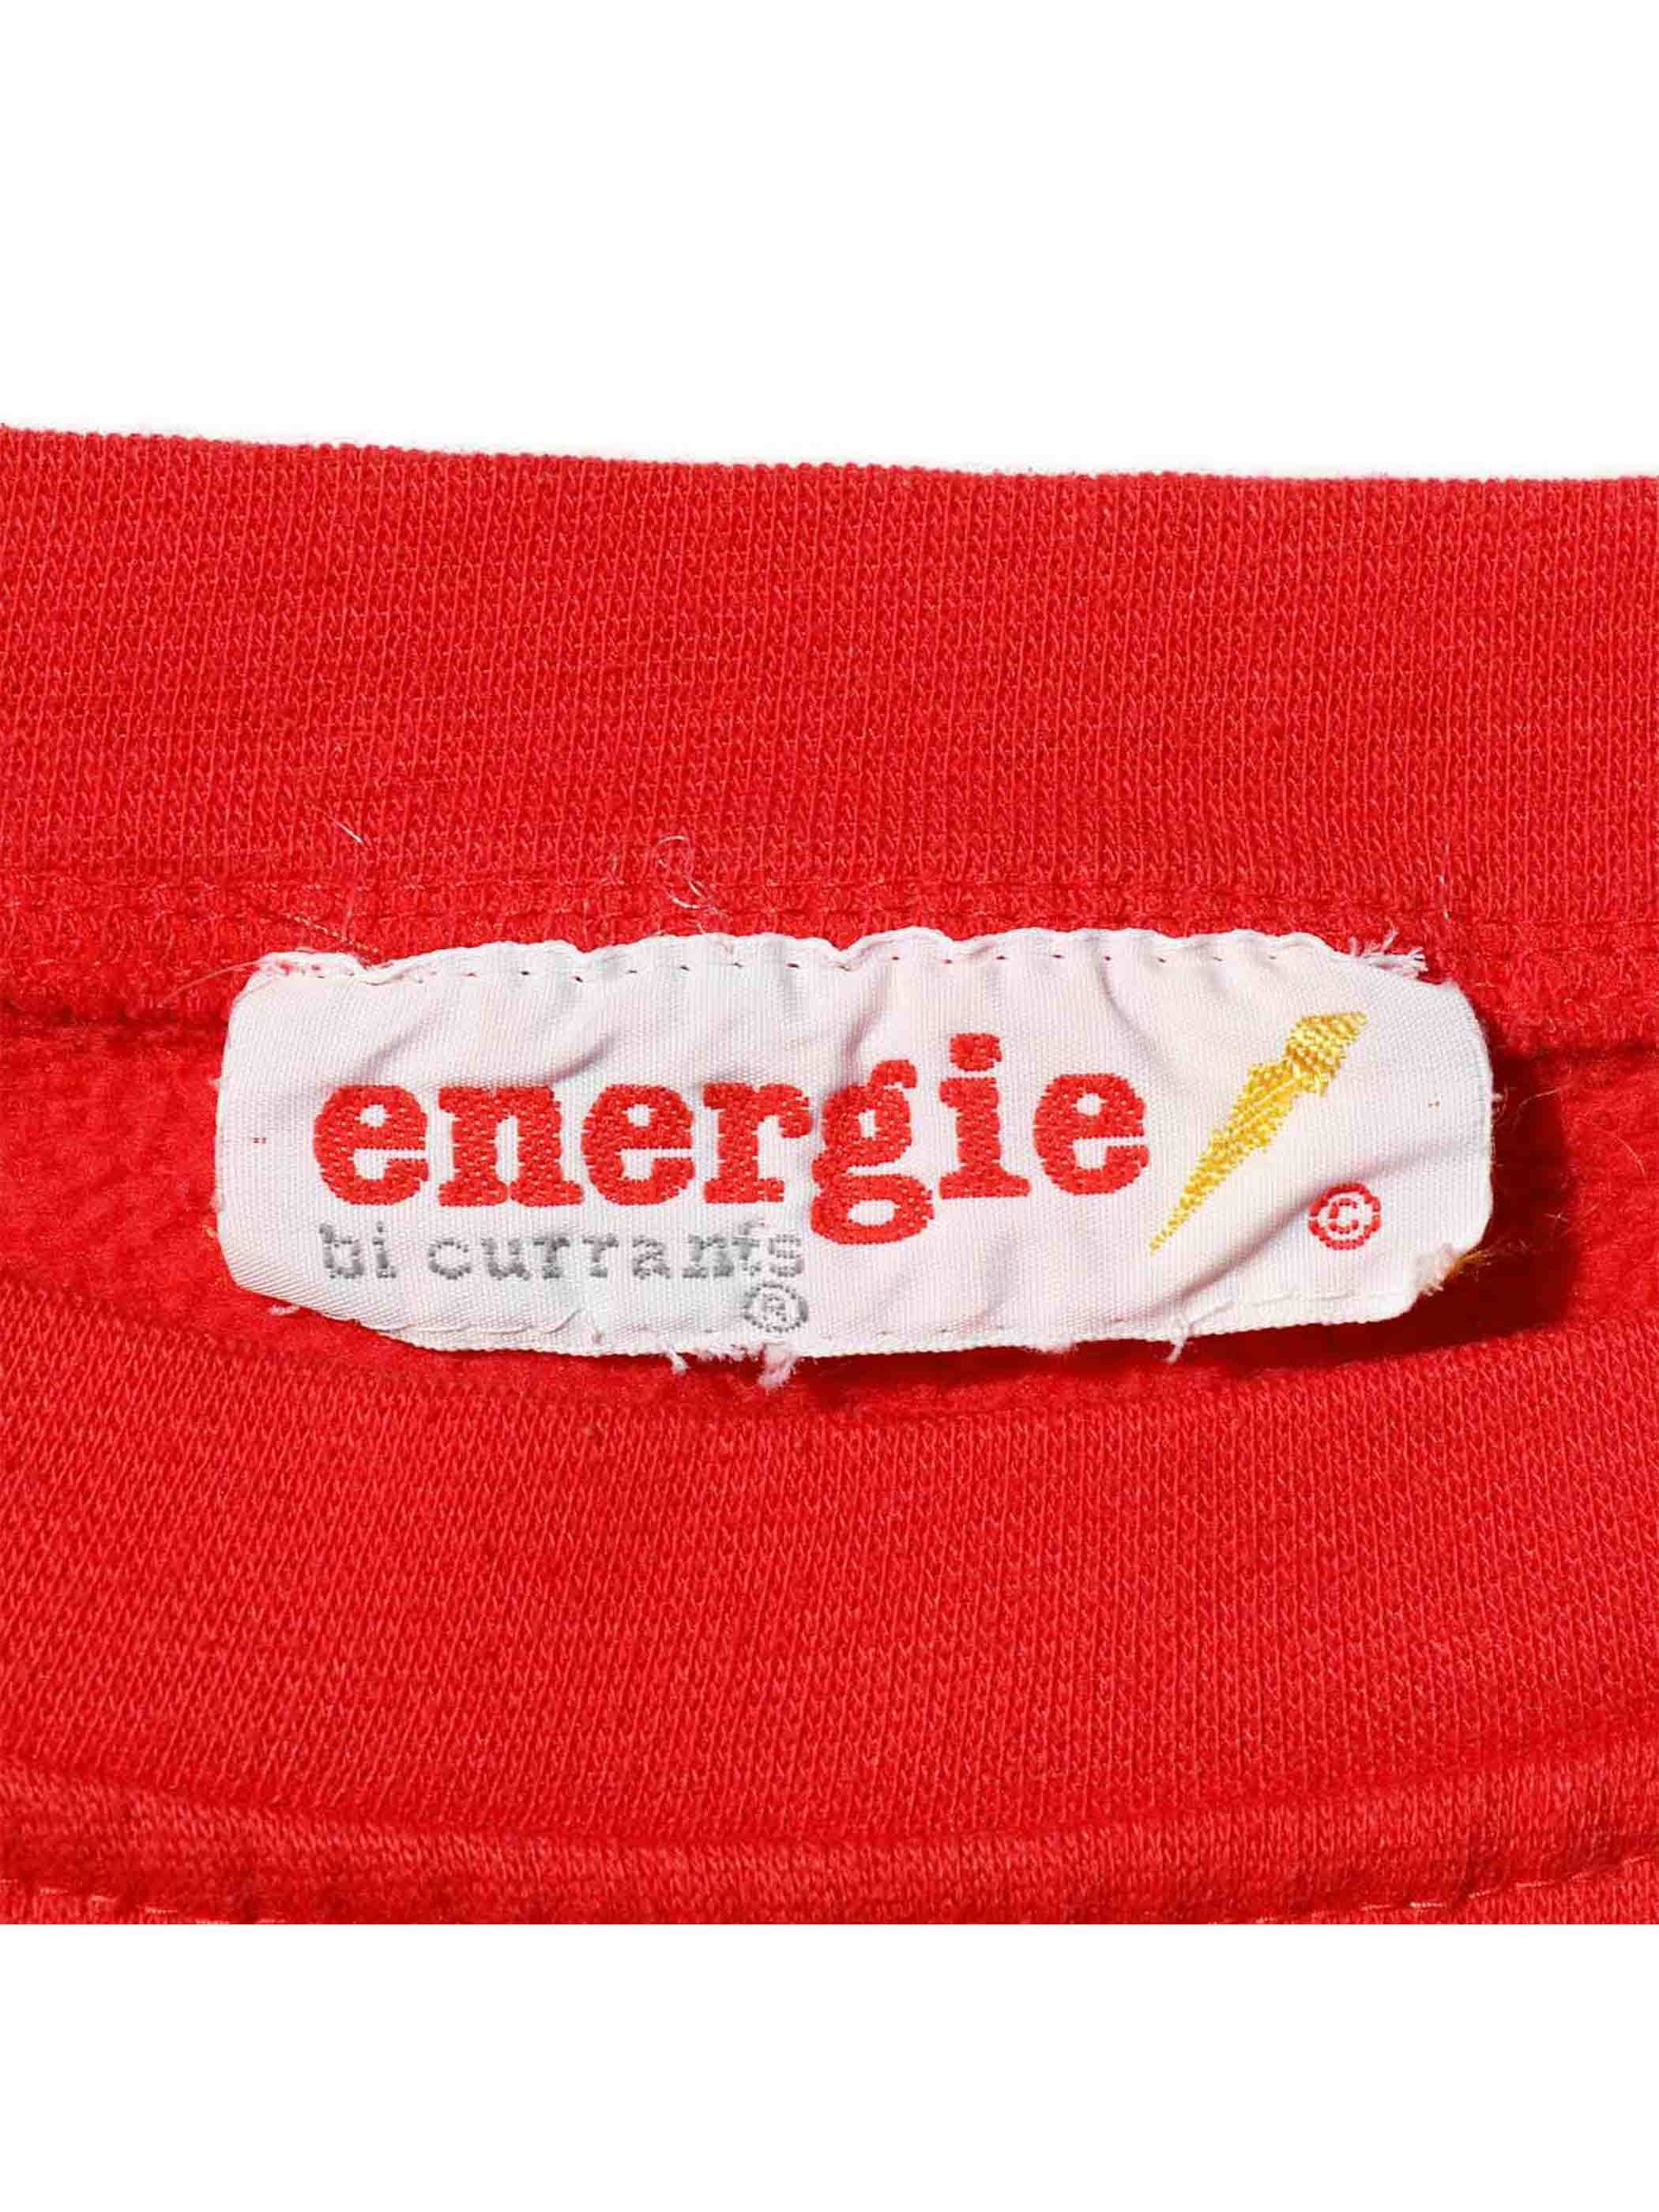 80's ENERGIE 3トーン ワイドスウェット [About XL]